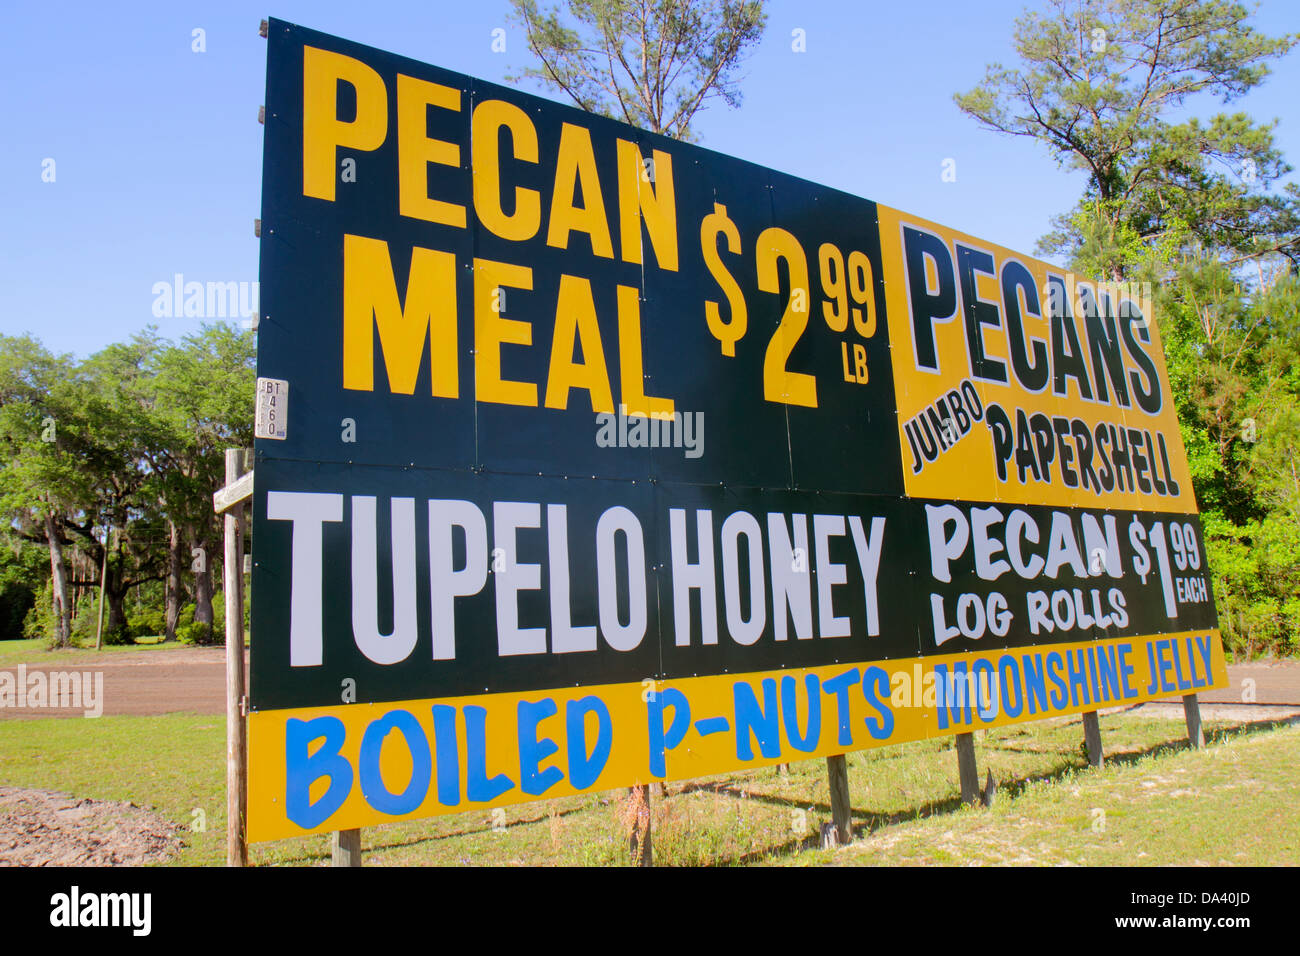 Florida Lamont Highway Route 98 Walker's Pecan House and Rest Stop sign Tupelo honey log rolls boiled peanuts - Stock Image